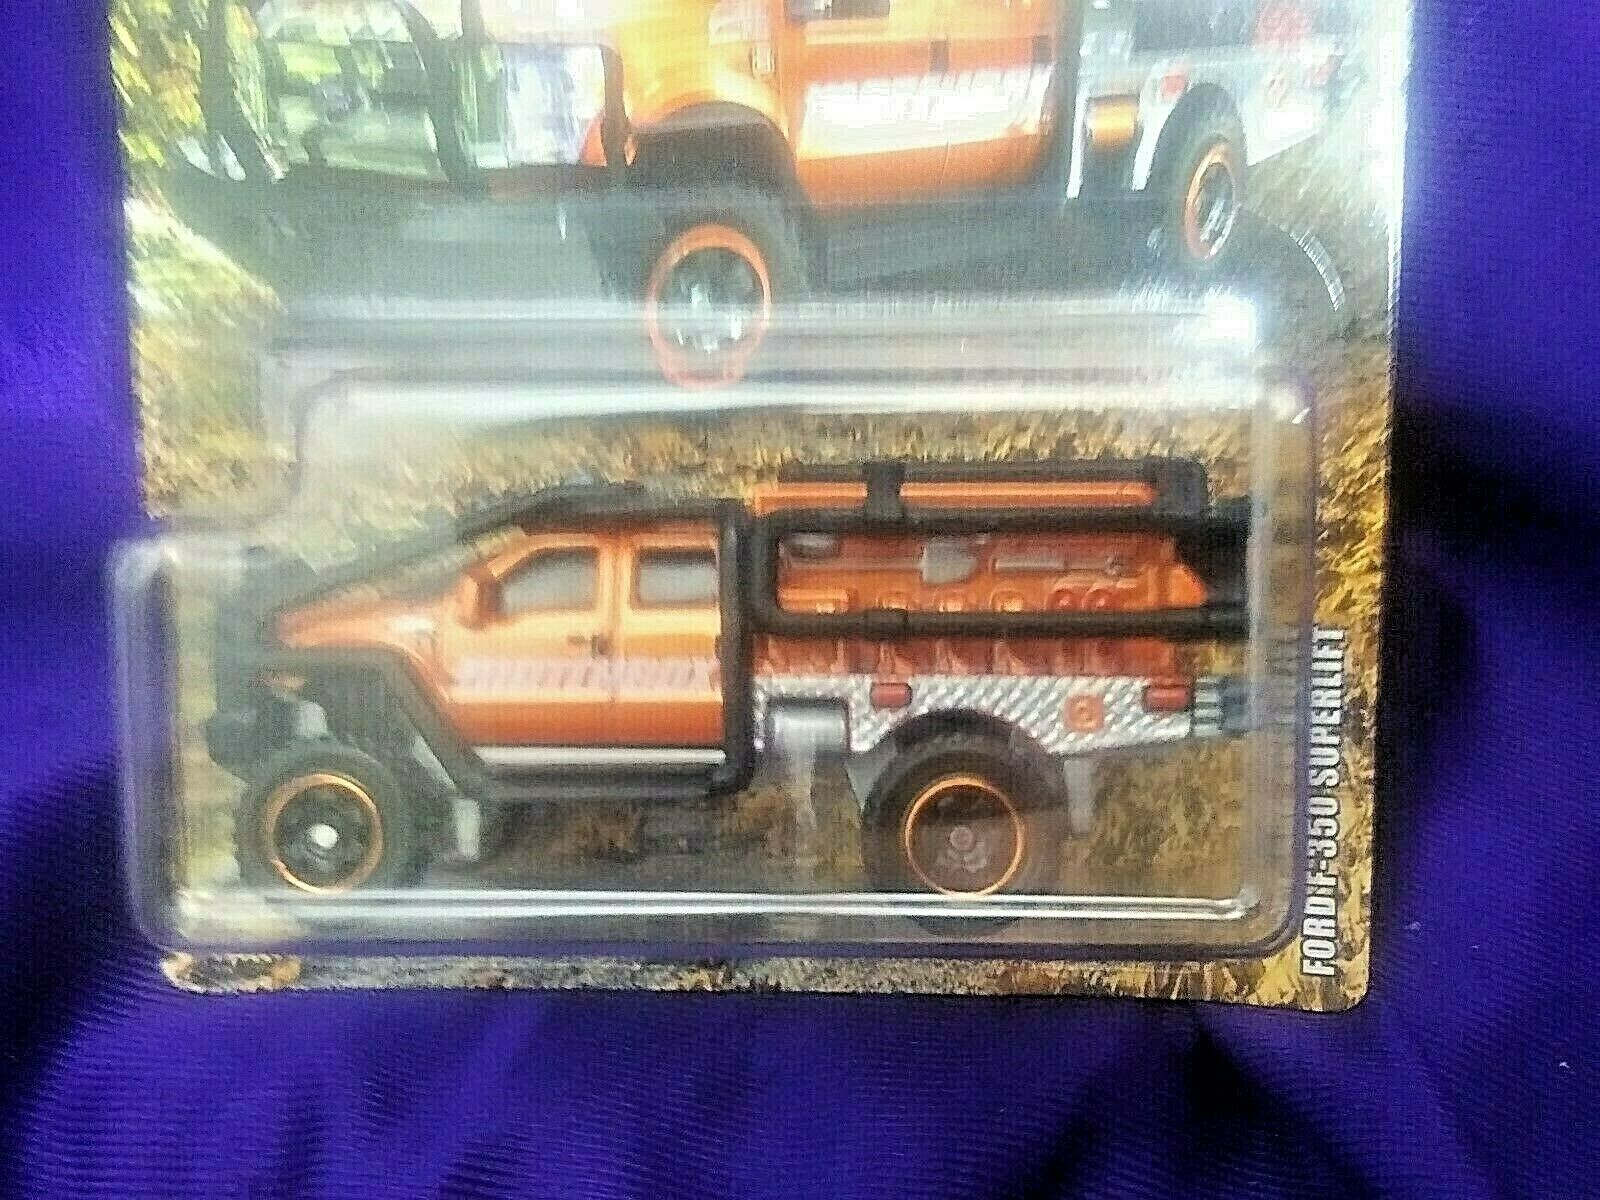 Matchbox Ford F-350 Superlift Truck Diecast 1:64 Scale Ford Series Mattel Boys 1